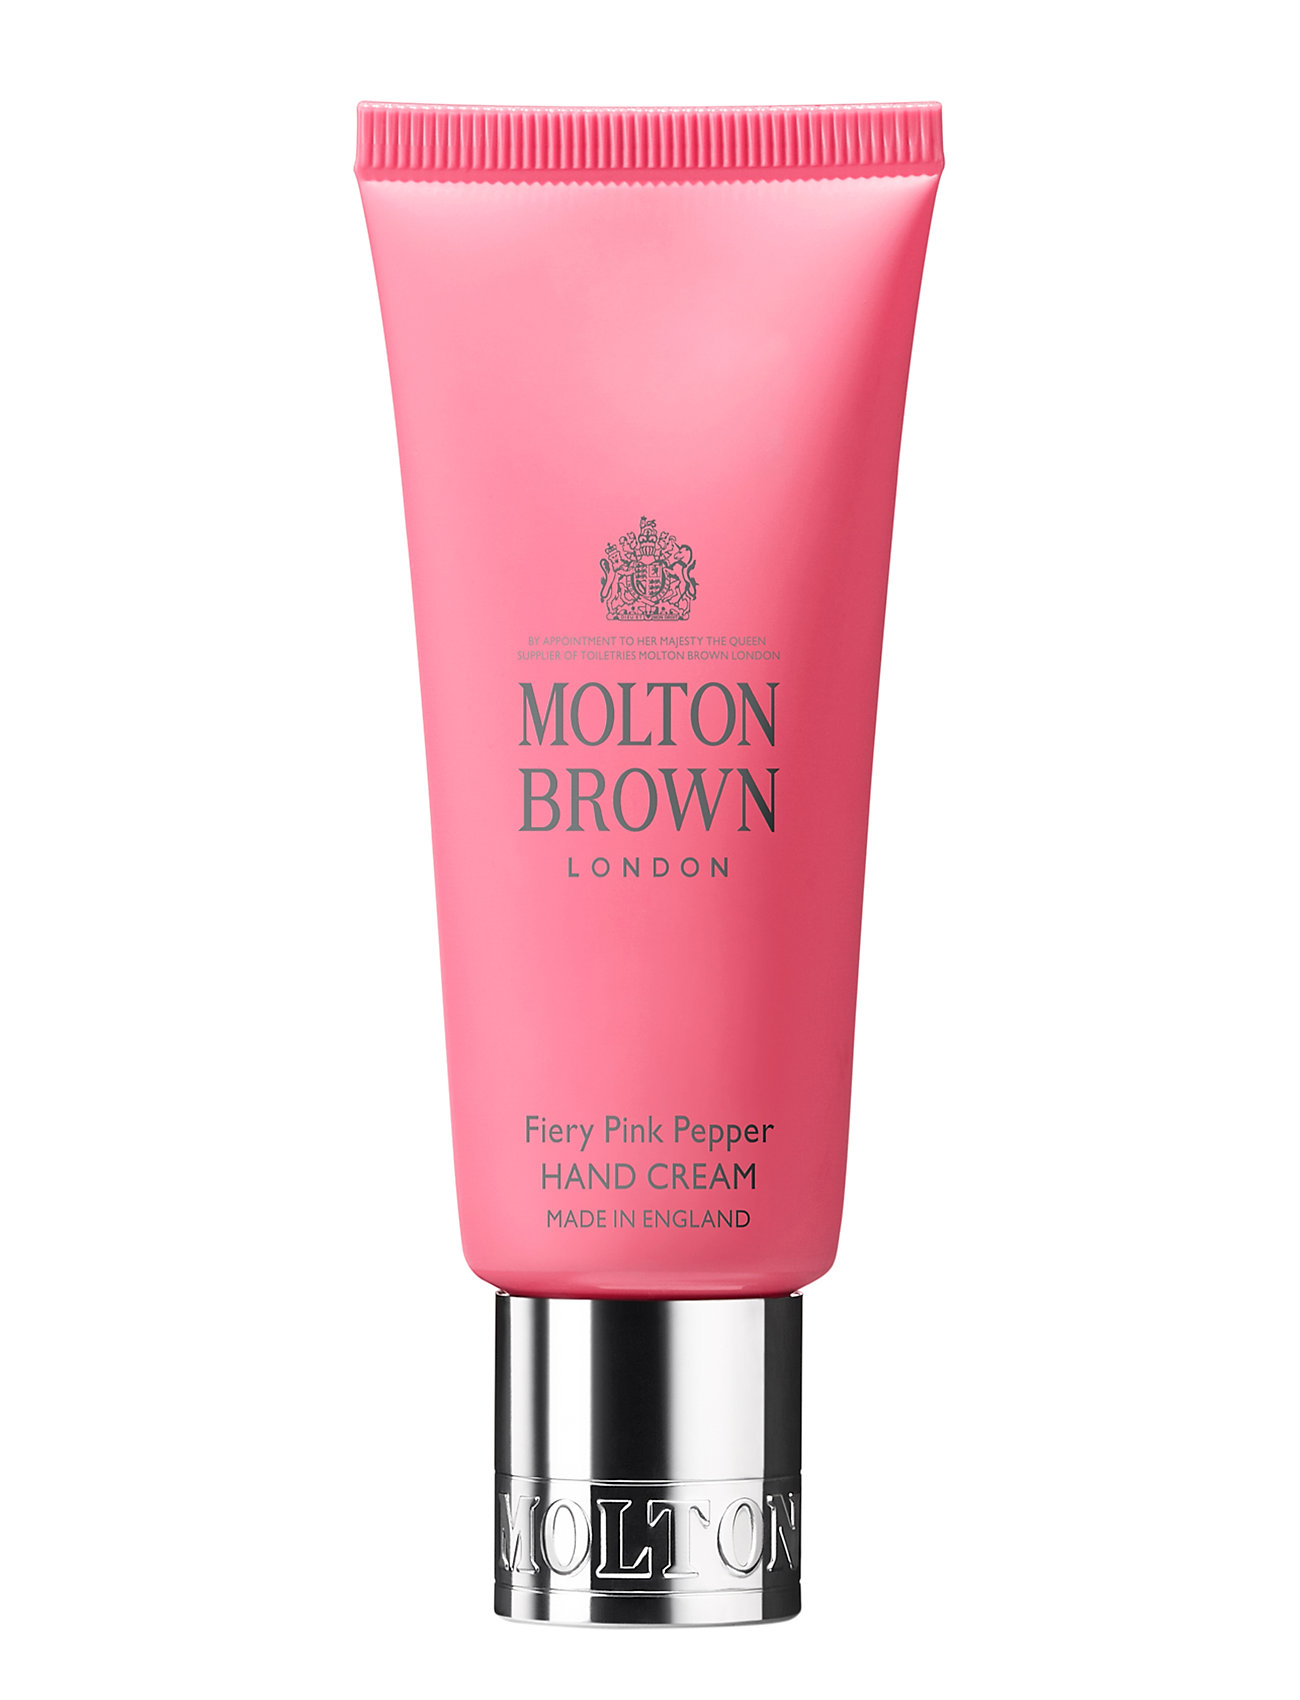 Image of Fiery Pink Pepperpod Hand Cream Beauty WOMEN Skin Care Body Hand Cream & Foot Cream Nude Molton Brown (3408583019)